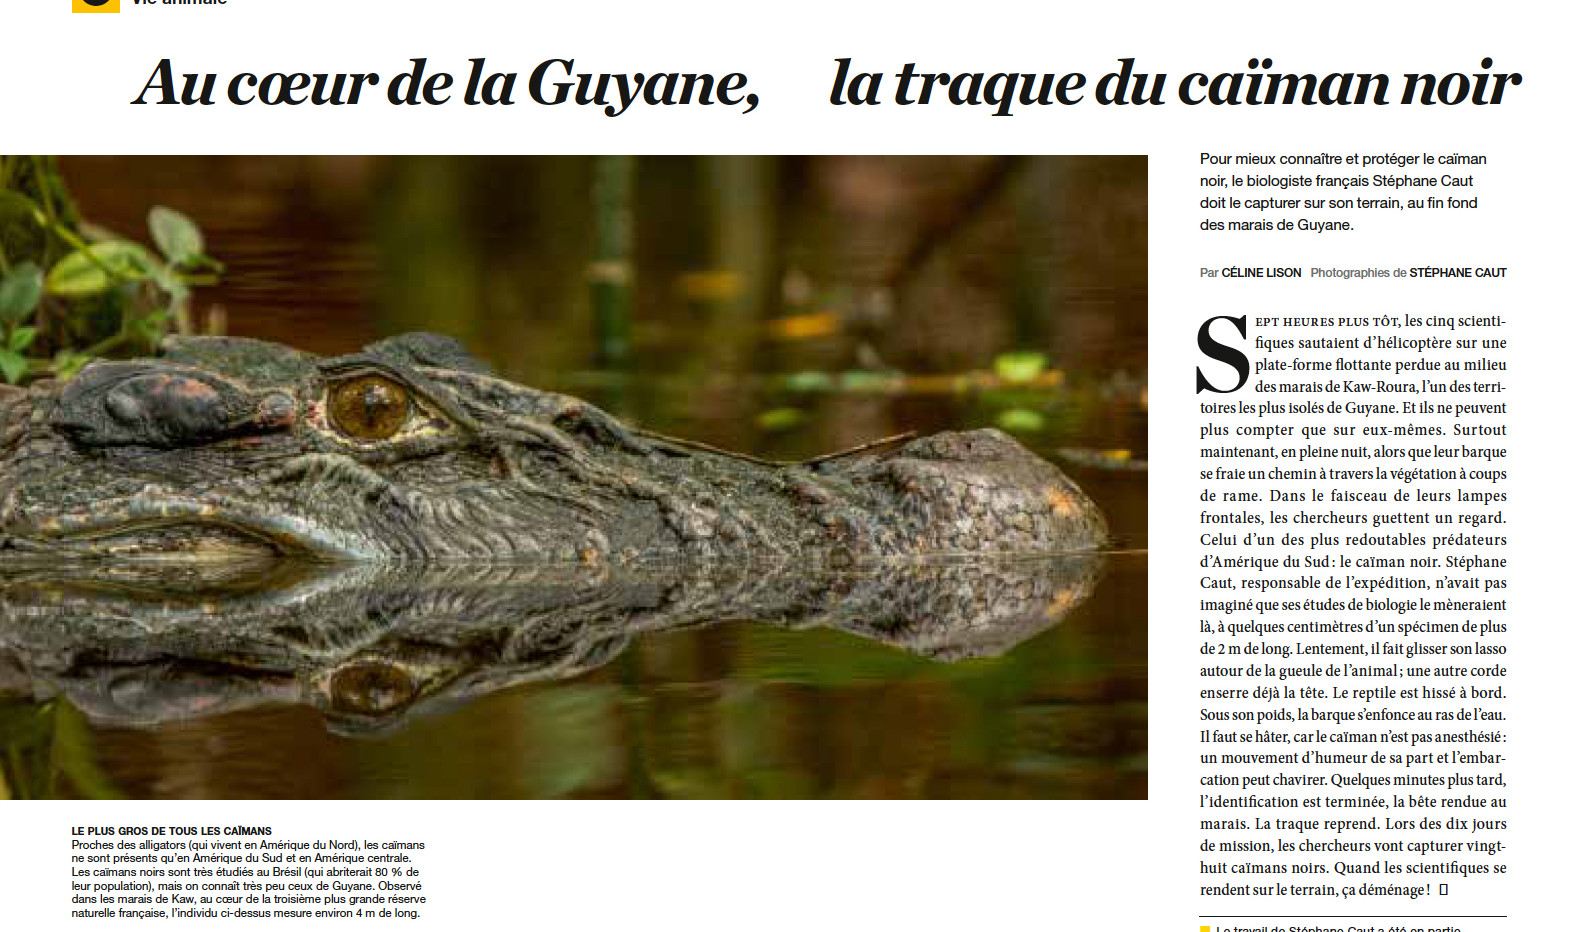 national geographic stephane caut page 1